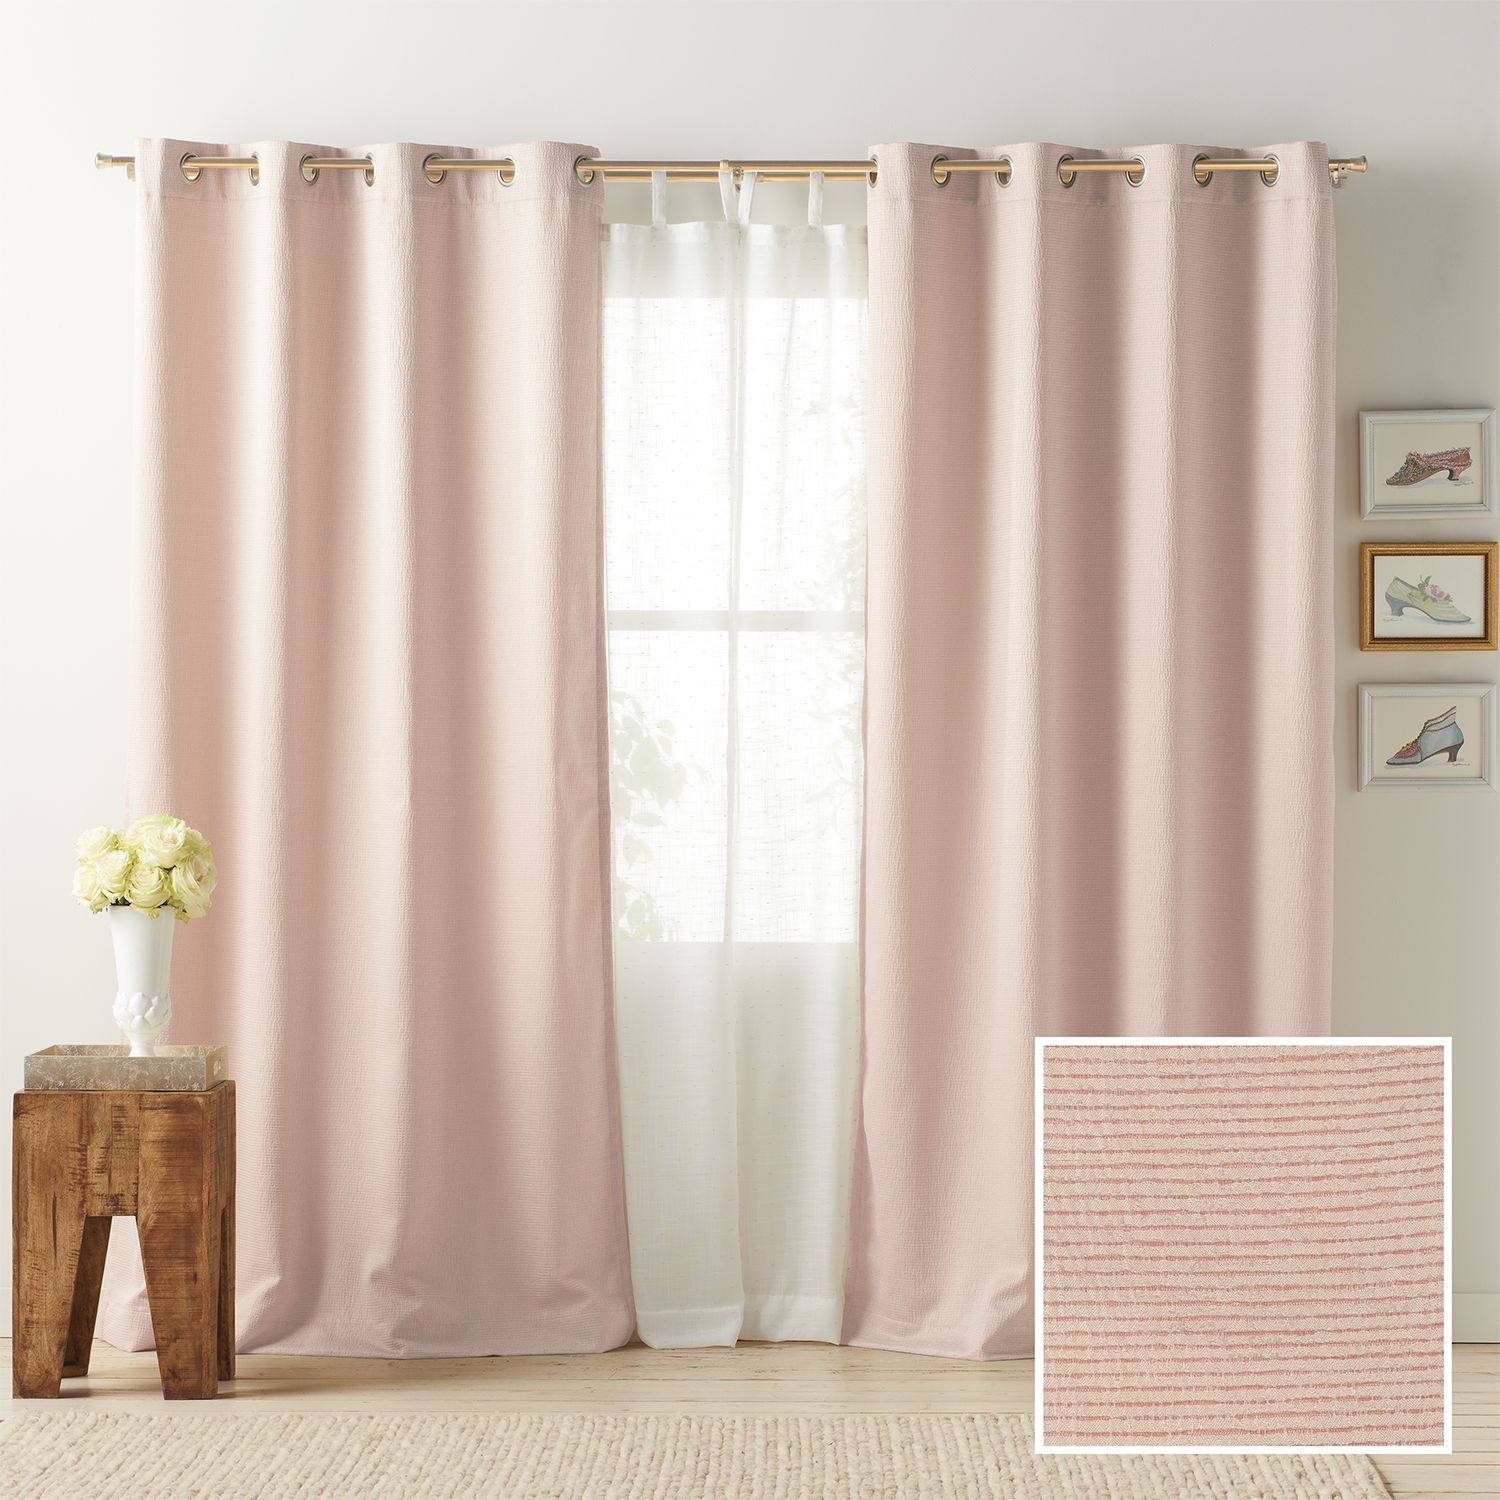 LC Lauren Conrad 1 Panel Antigua Room Darkening Lined Window Curtain